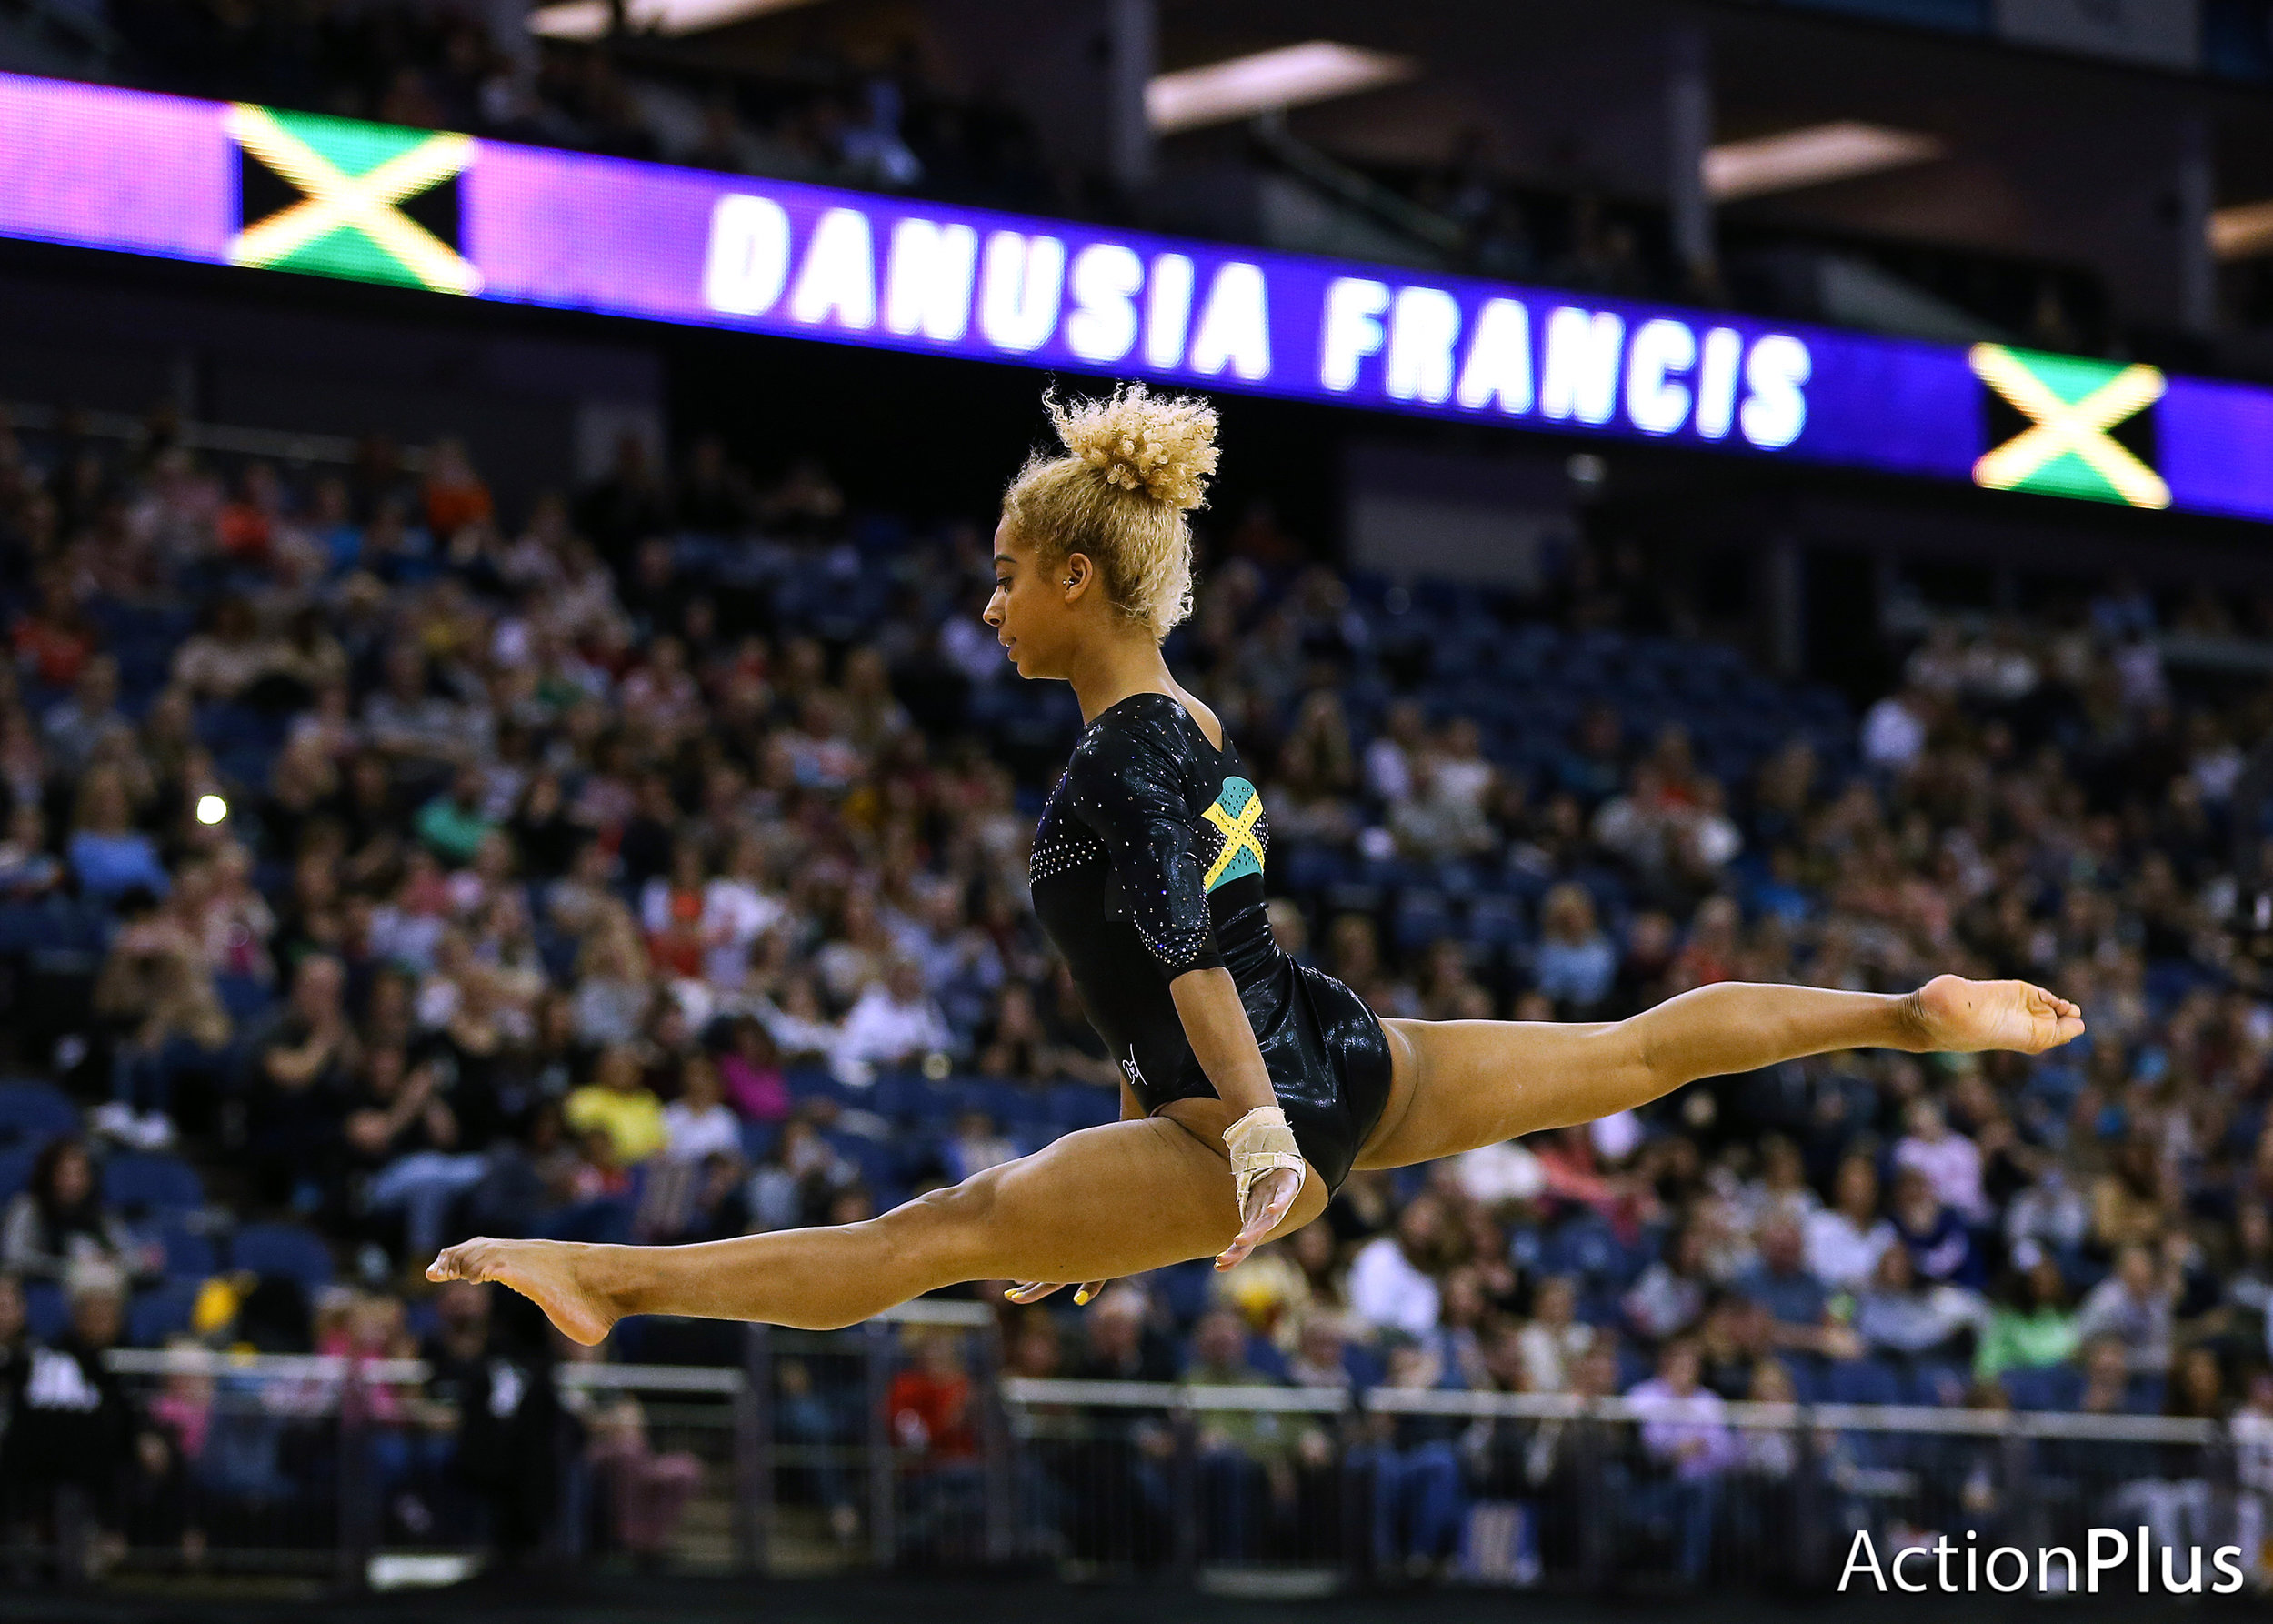 Danusia Francis of Jamaica performing on the floor.